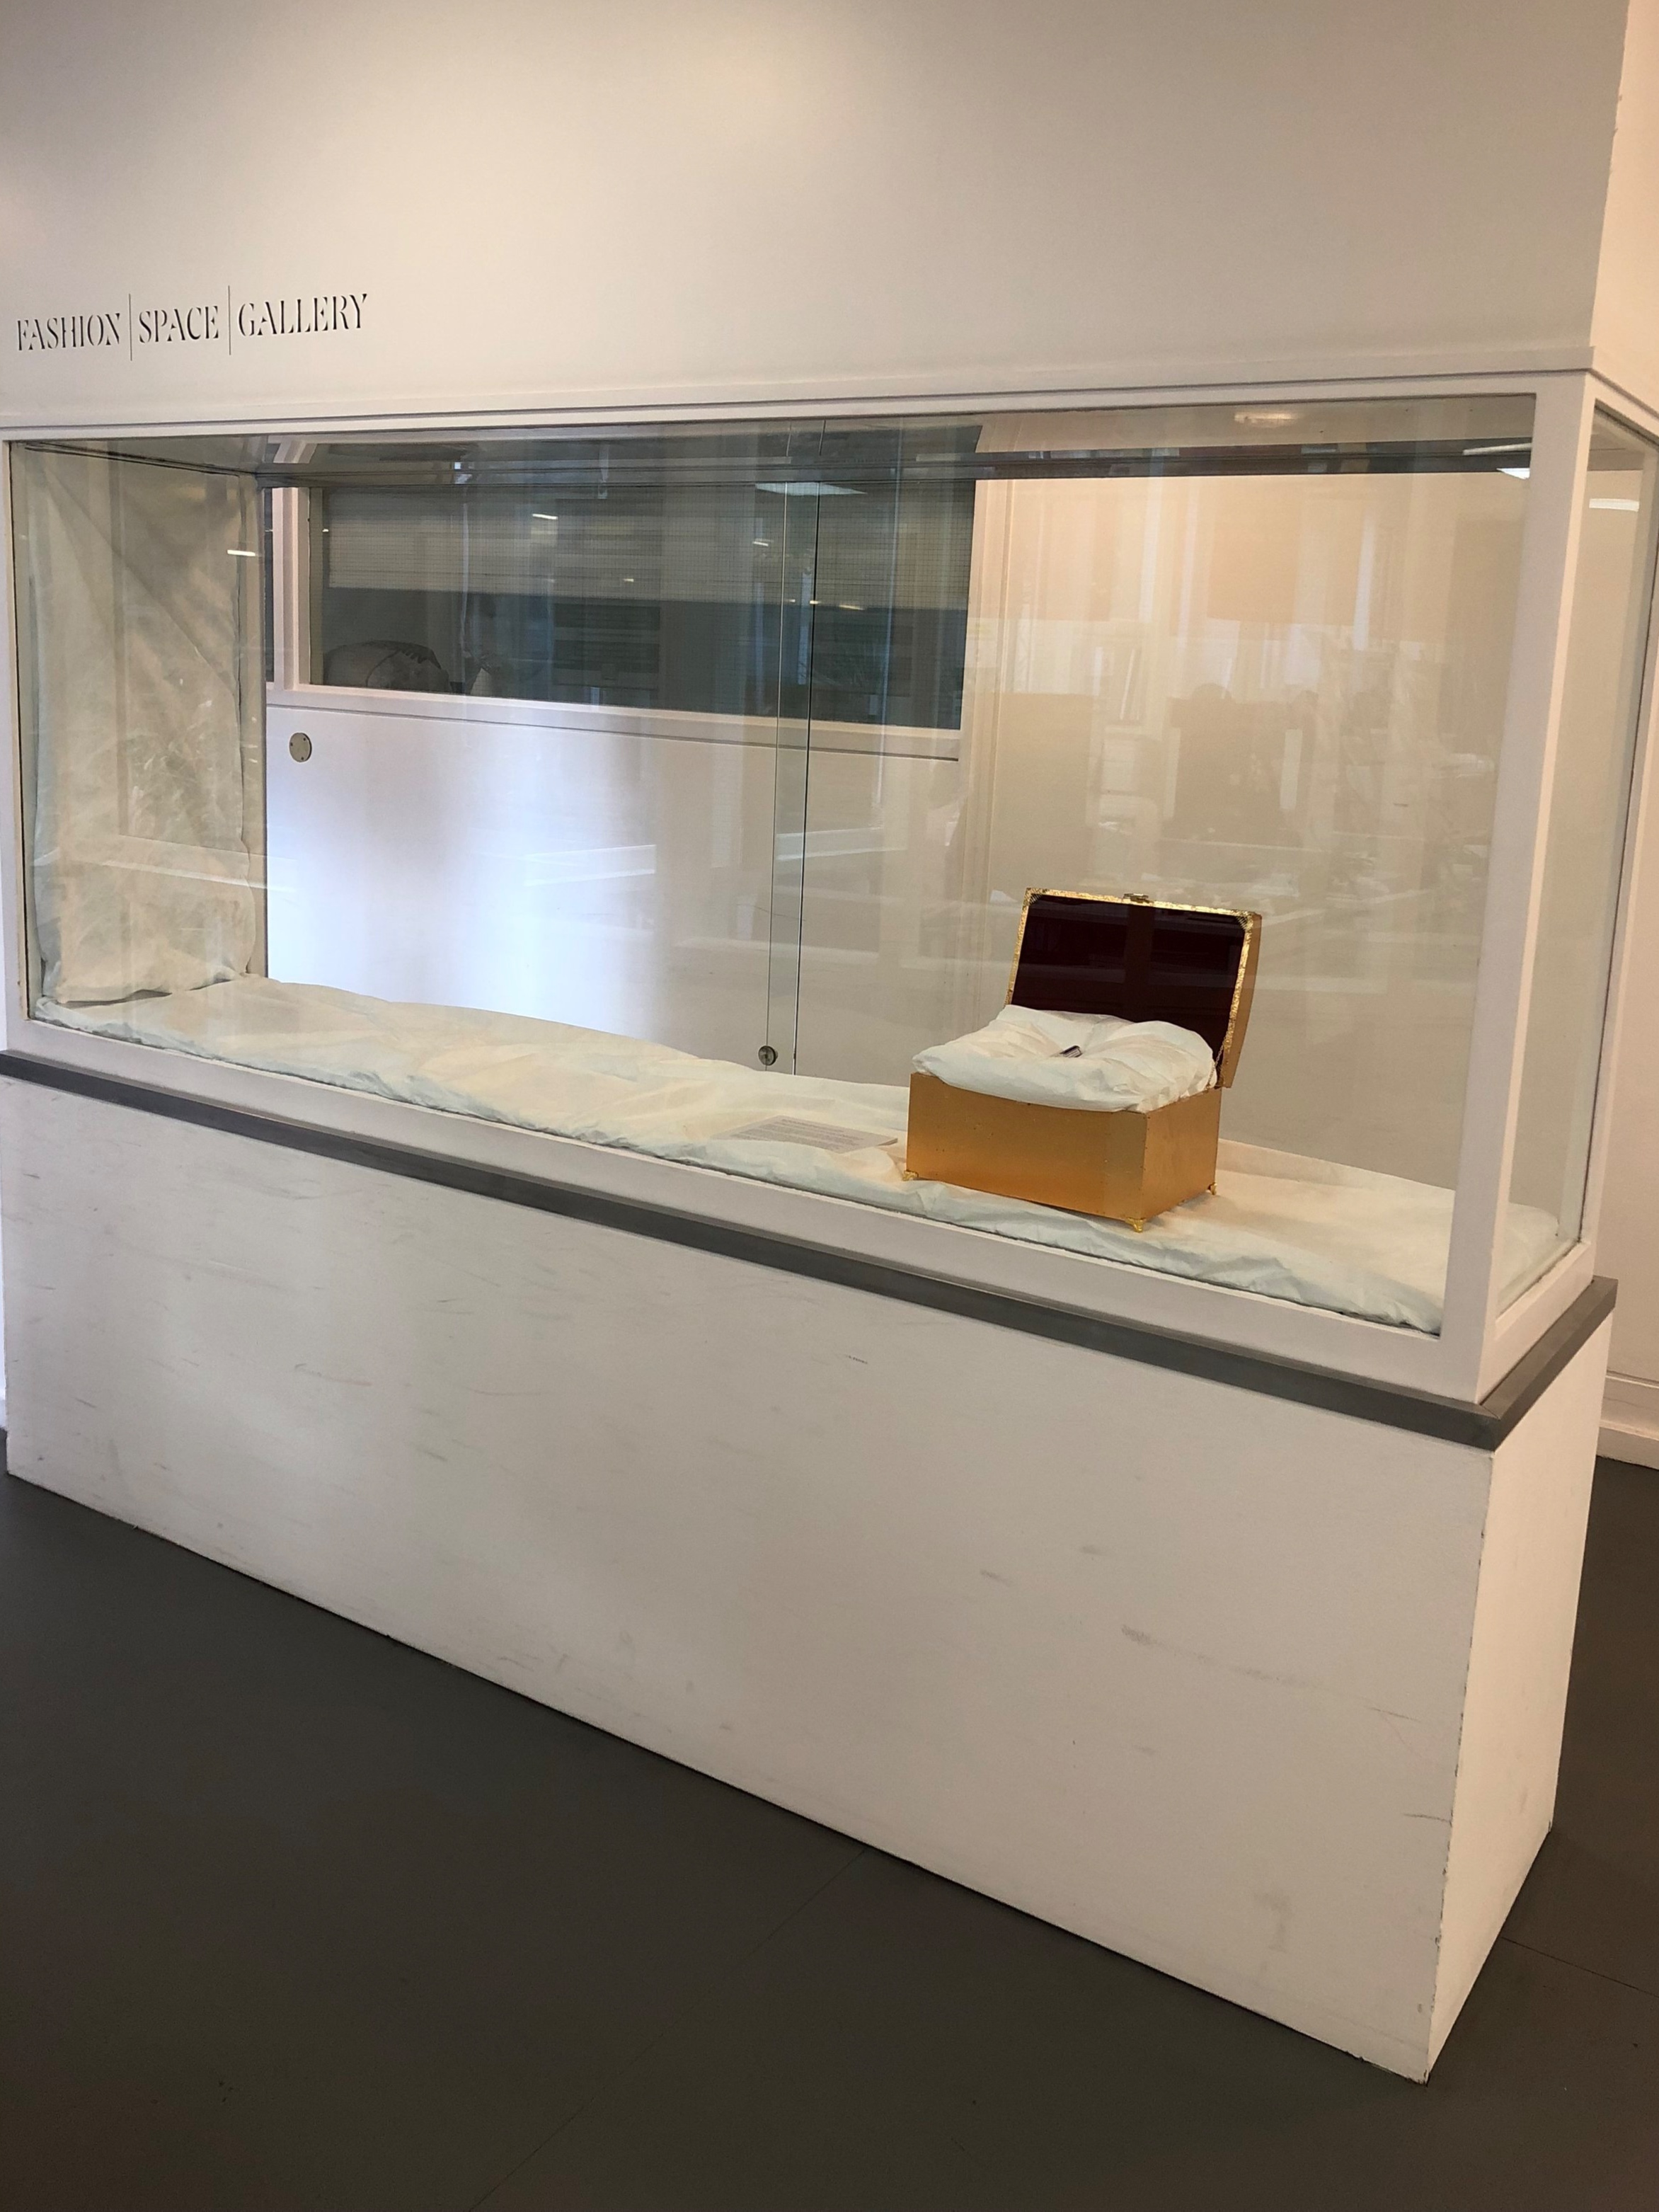 The Sacred Profane: Reliquary of Francis Golding , an exhibition questioning object biography and curatorial interruption, curated by Cyana Madsen (September - December 2018)